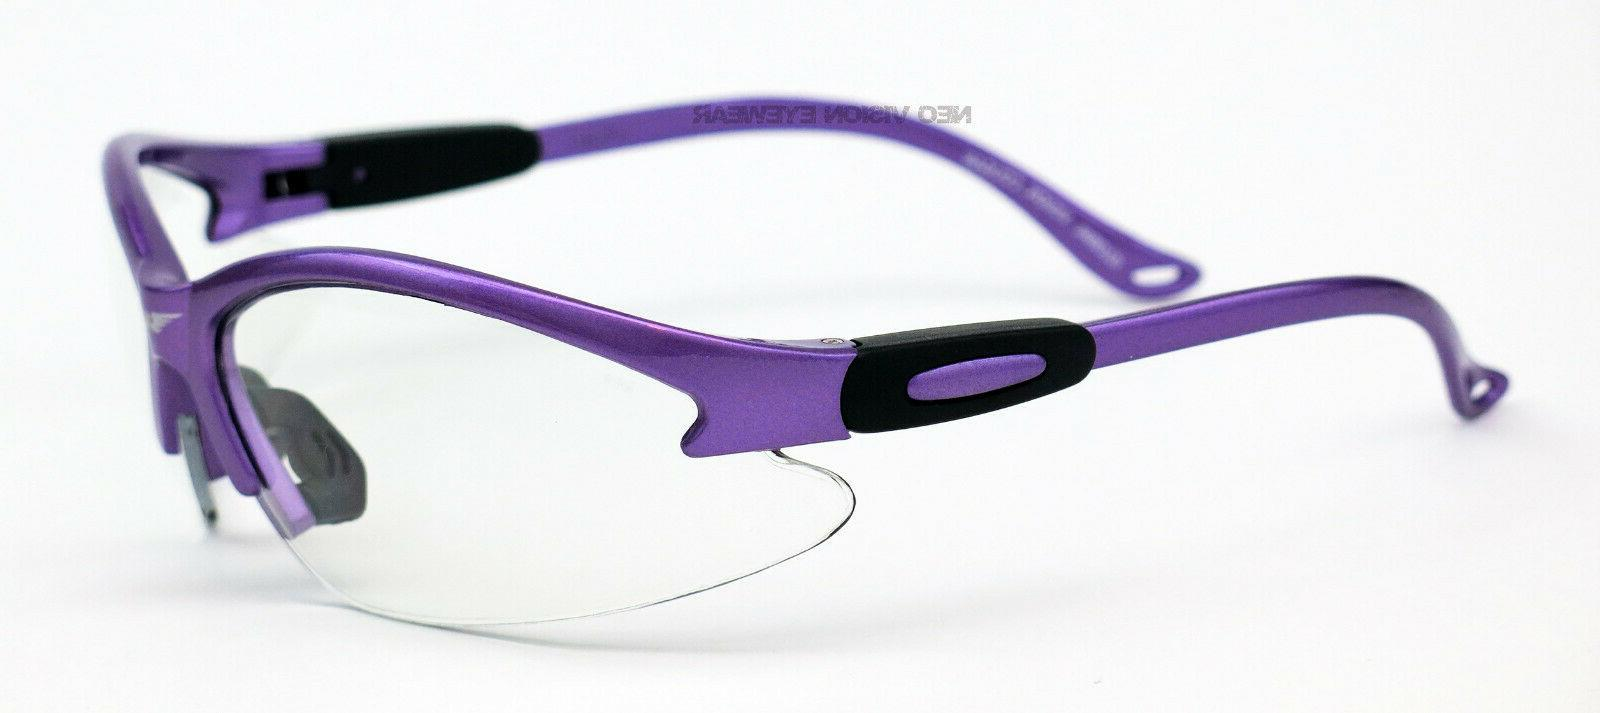 Global Cougar Frame Clear Glasses Motorcycle Z87+